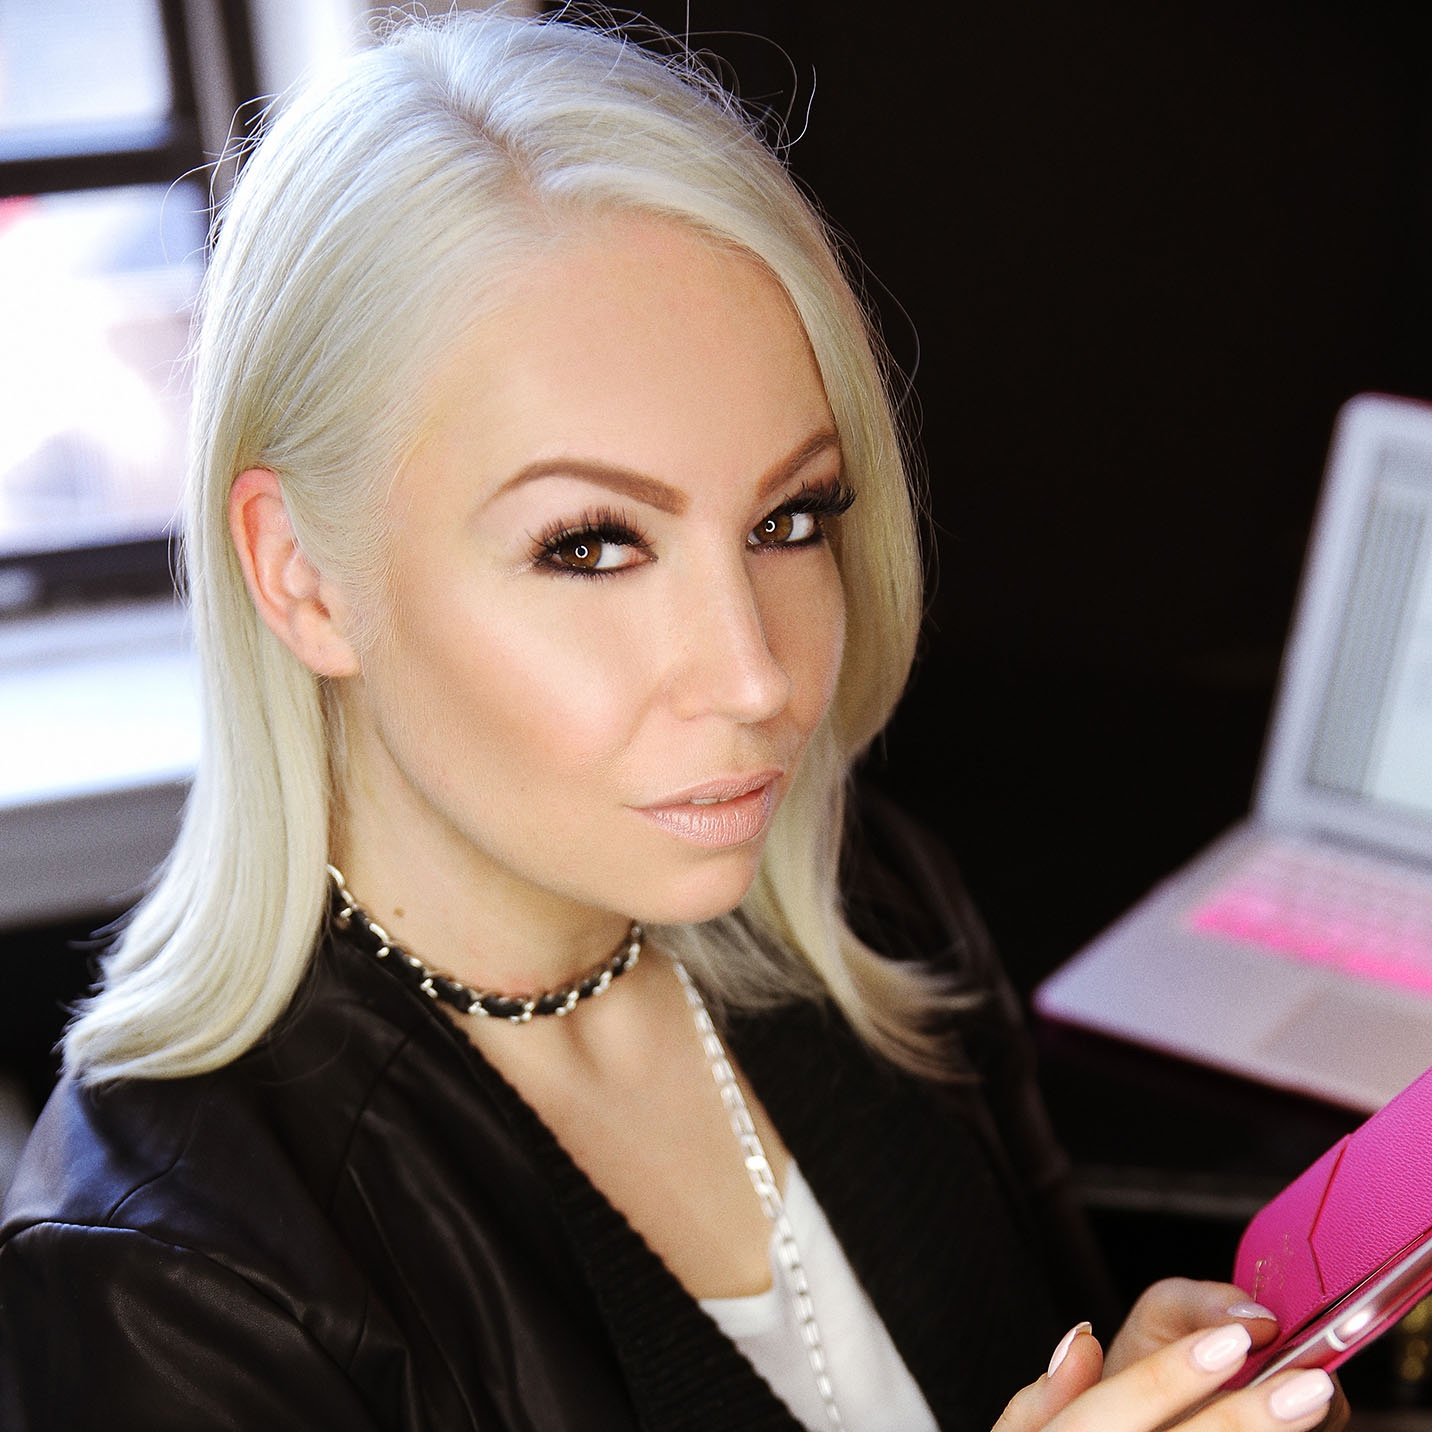 Cara Alwill Leyba - Our sweet friend Cara Alwill Leyba is the woman behind The Champagne Diet, and at POSH PR®, Champagne is Always the Answer®. Cara not only educates women on how to start your journey to a healthy mind and body, but she also created the private Facebook community, The Slay Baby Collective. This community is one where members can visit daily and receive inspiration, support, and positive vibes. Cara's main focus? To have a space where women are building each other up and are living passionately!